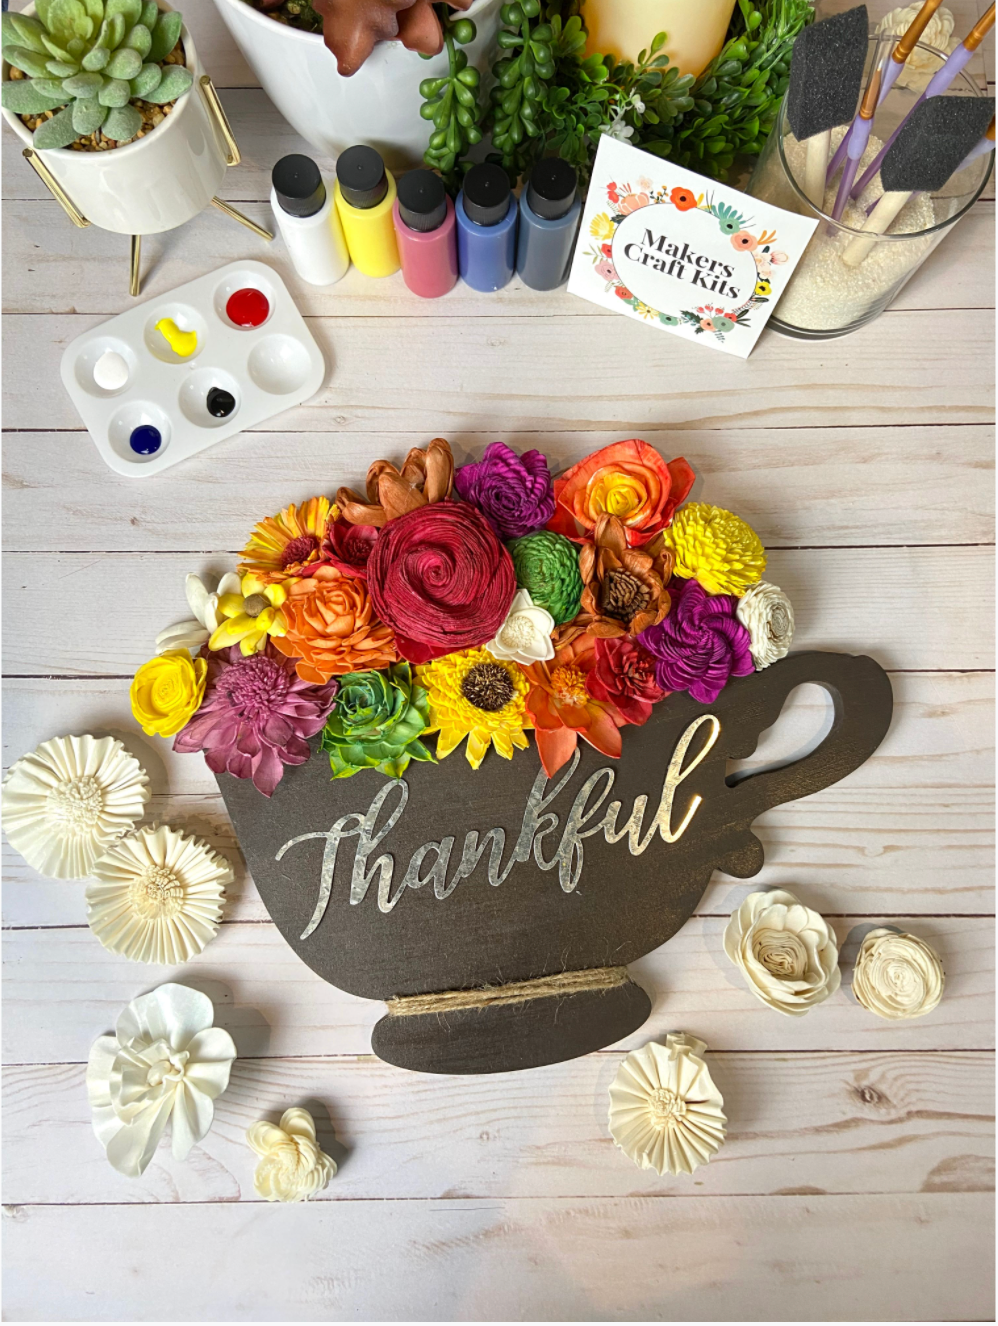 Sola Wood Flower Tea Cup and Fall Theme